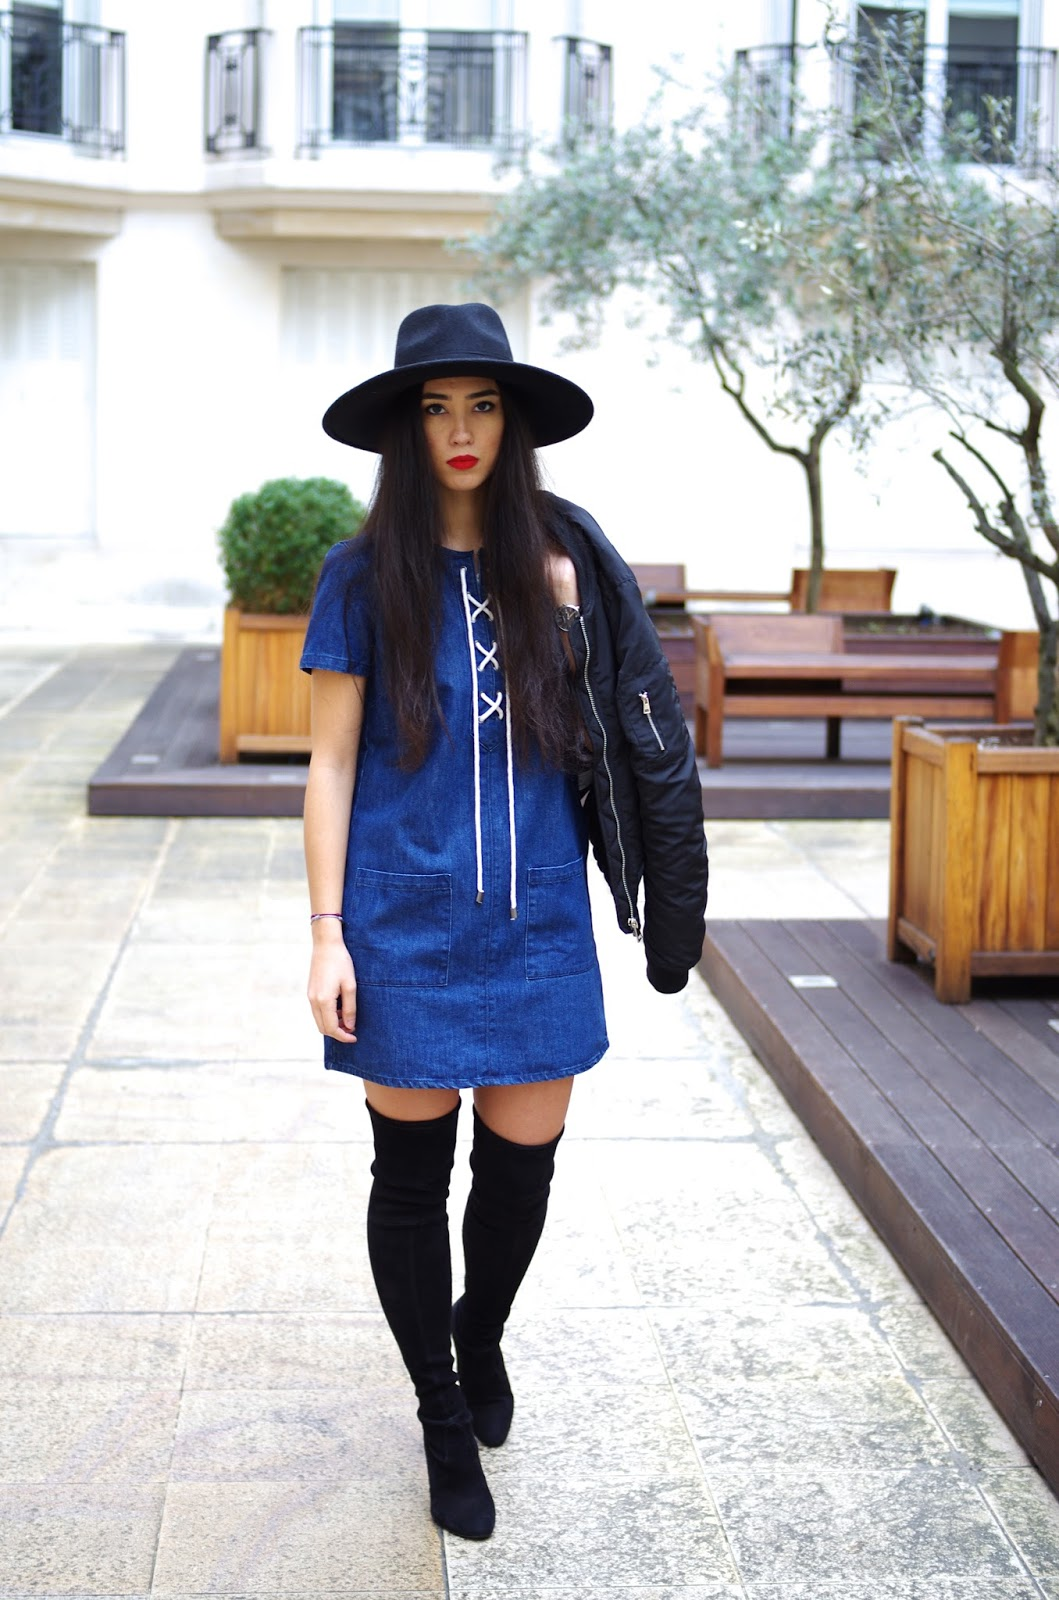 Elizabeth l Lace Up Denim Forever21 l THEDEETSONE l http://thedeetsone.blogspot.fr